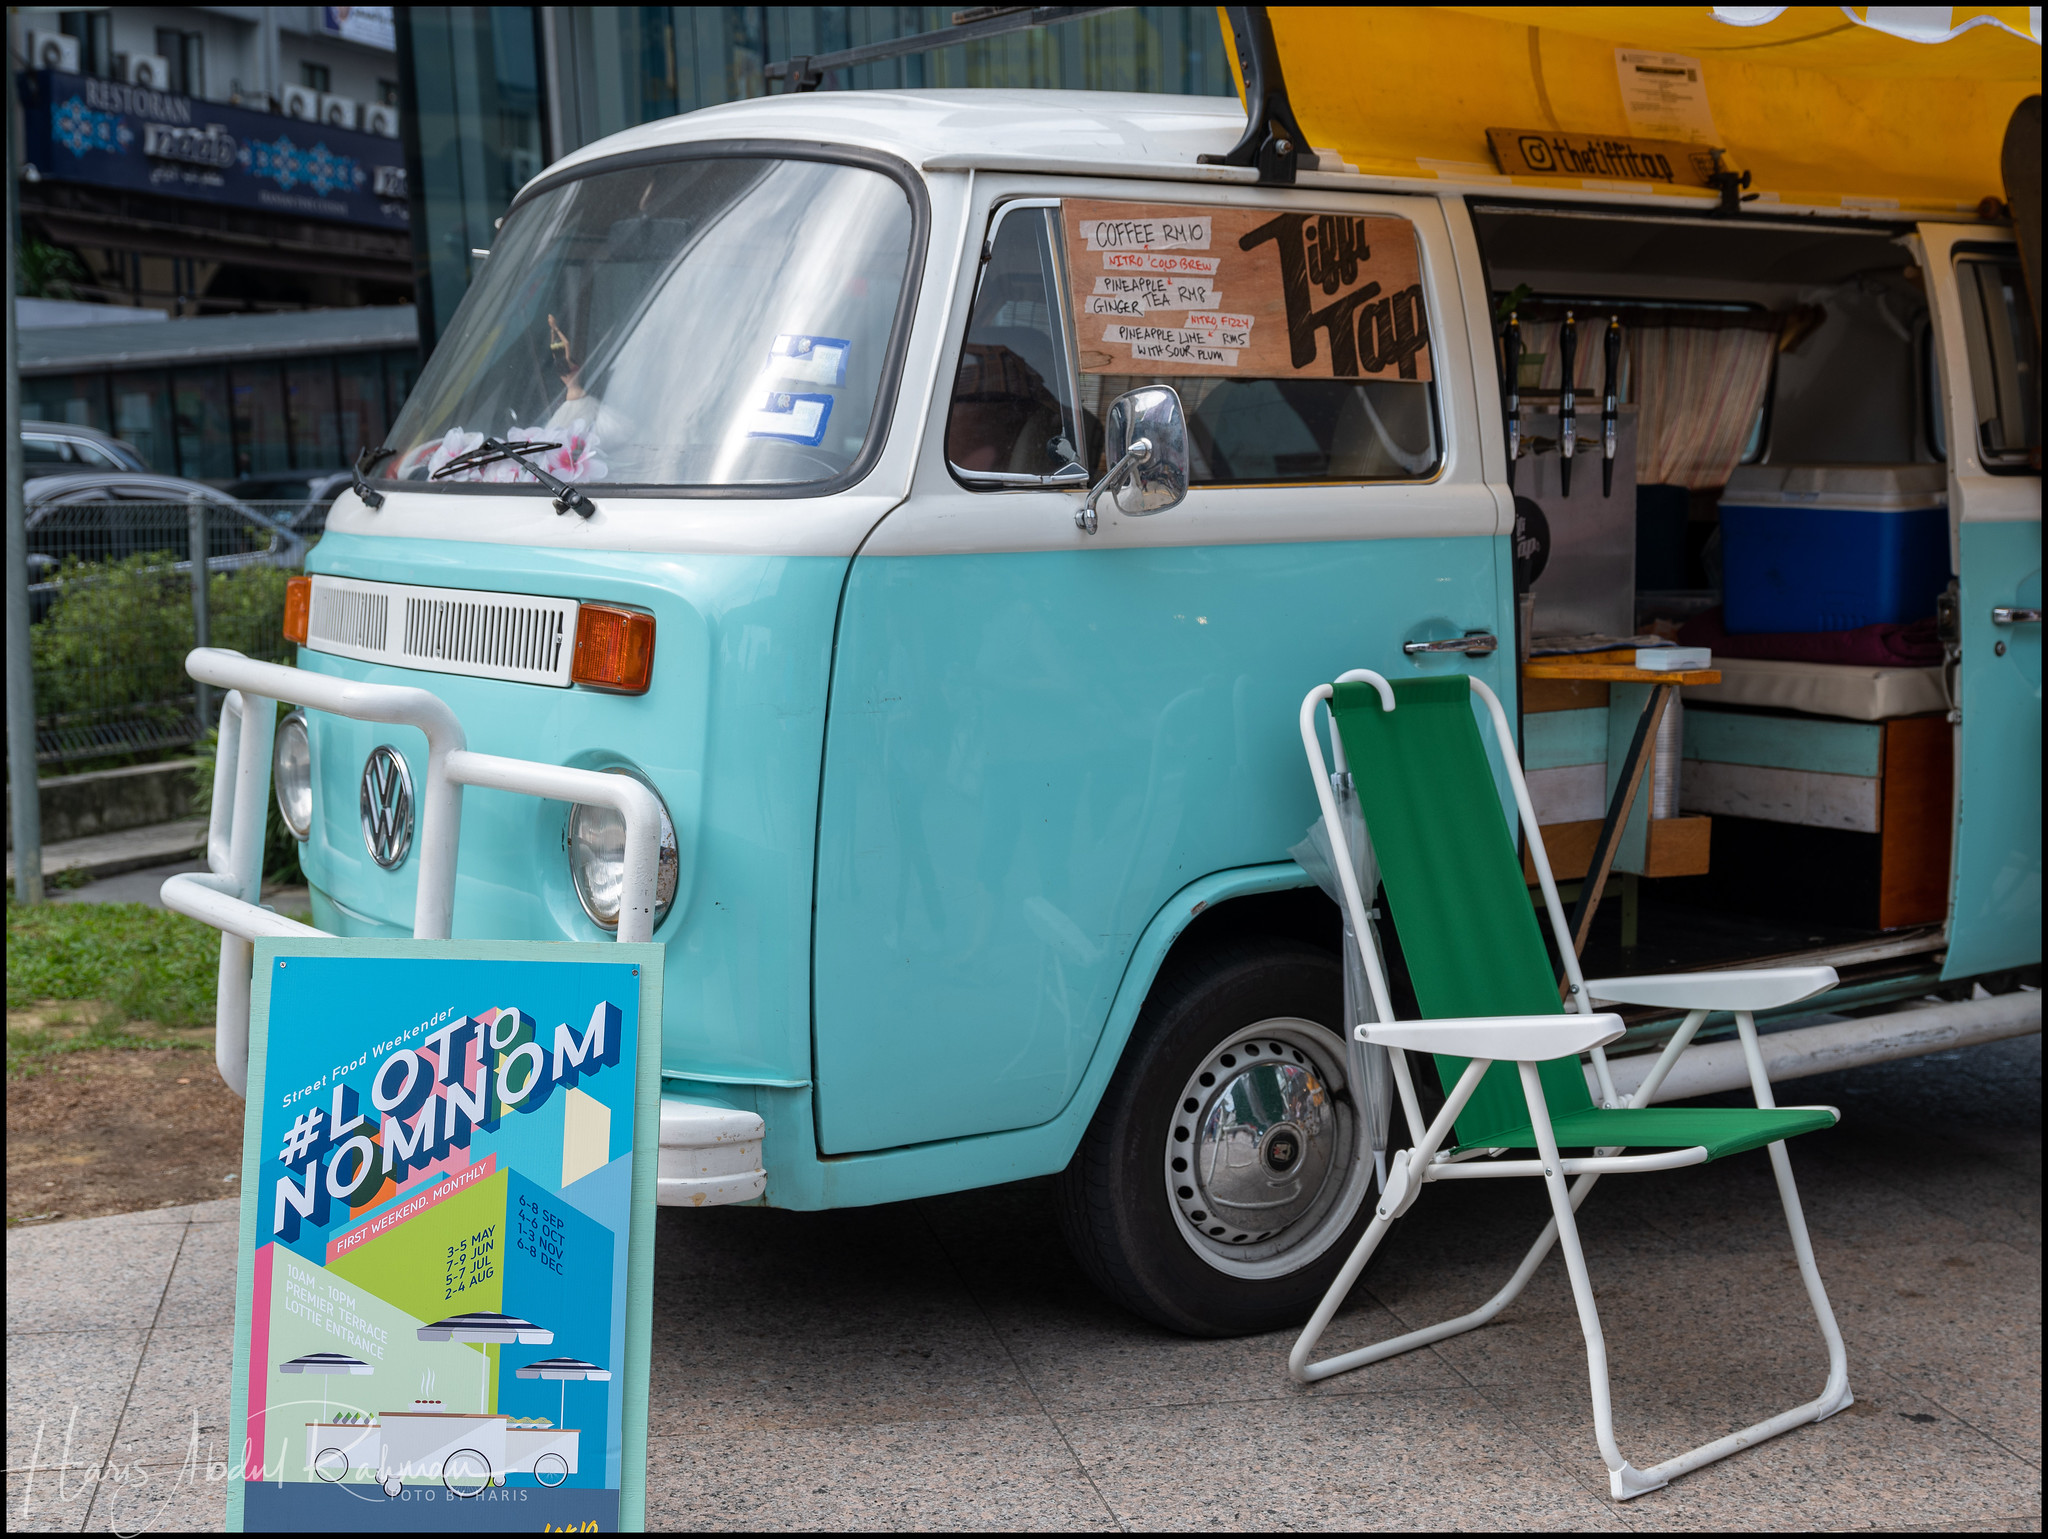 A cute campervan being turned into a food truck